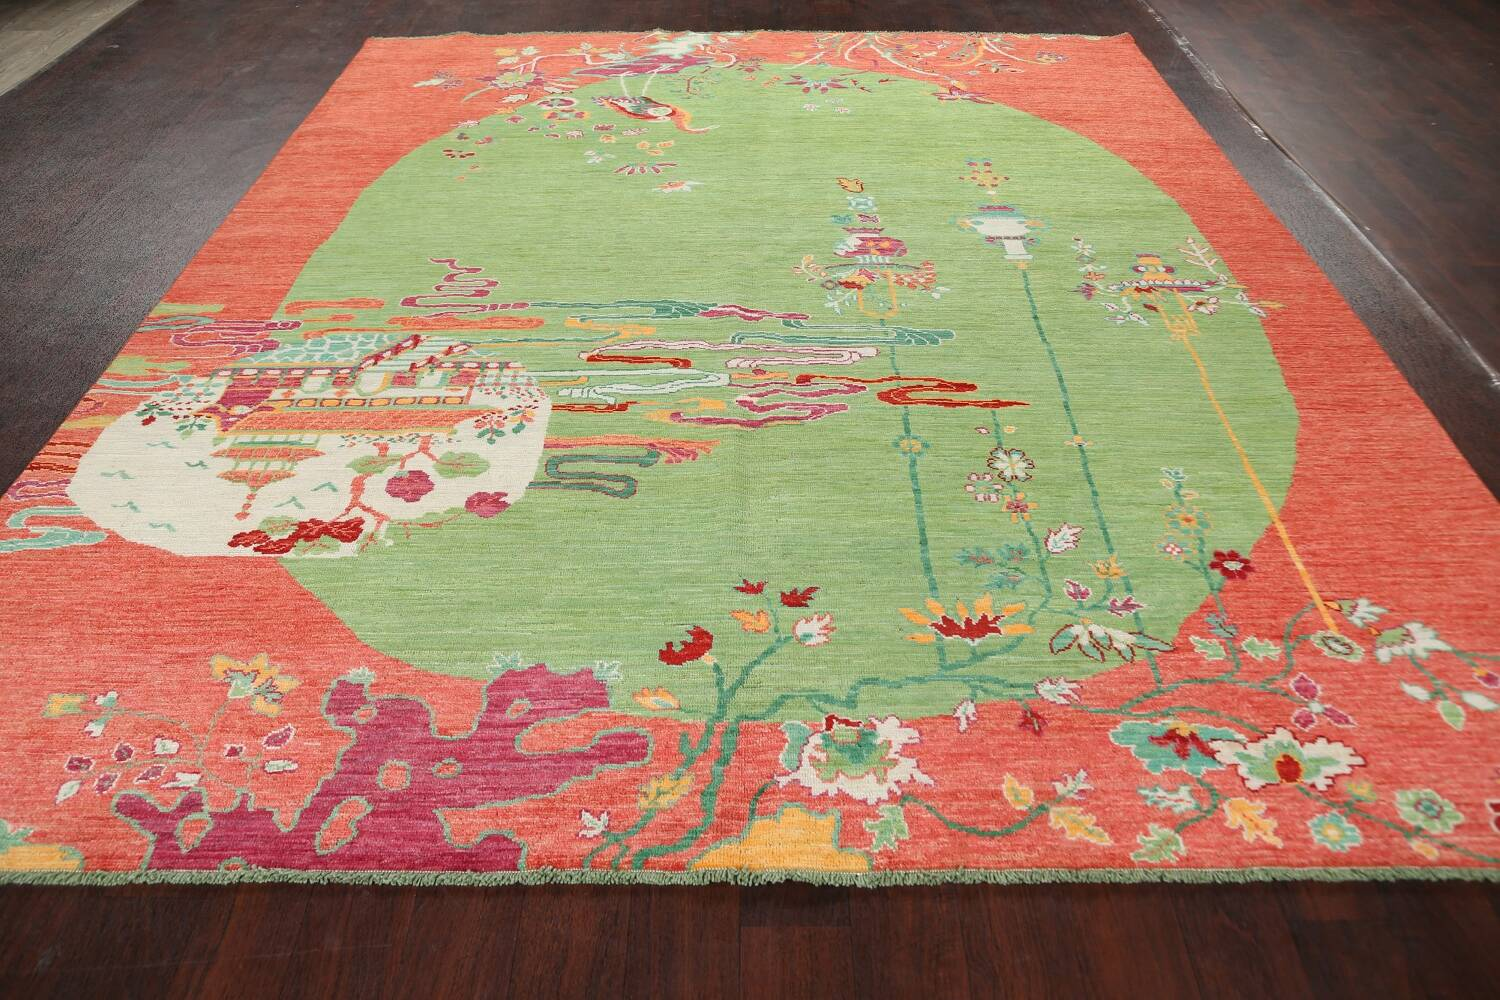 Pictorial Art Deco Chinese Oriental Area Rug 8x10 image 16